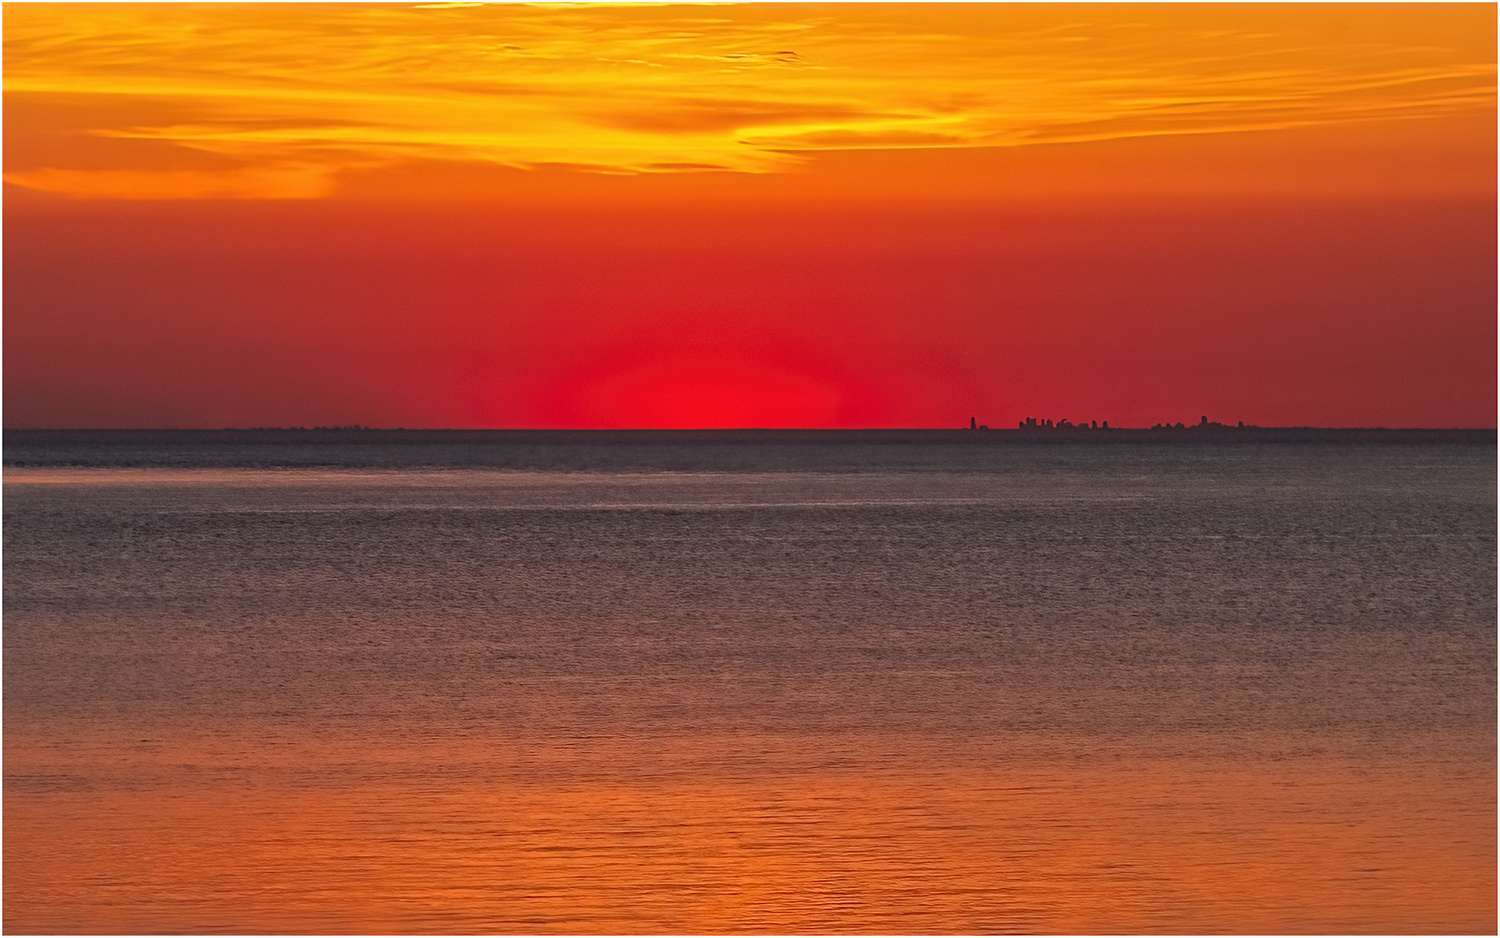 Lake Ontario Sunset by Cliff Mueller